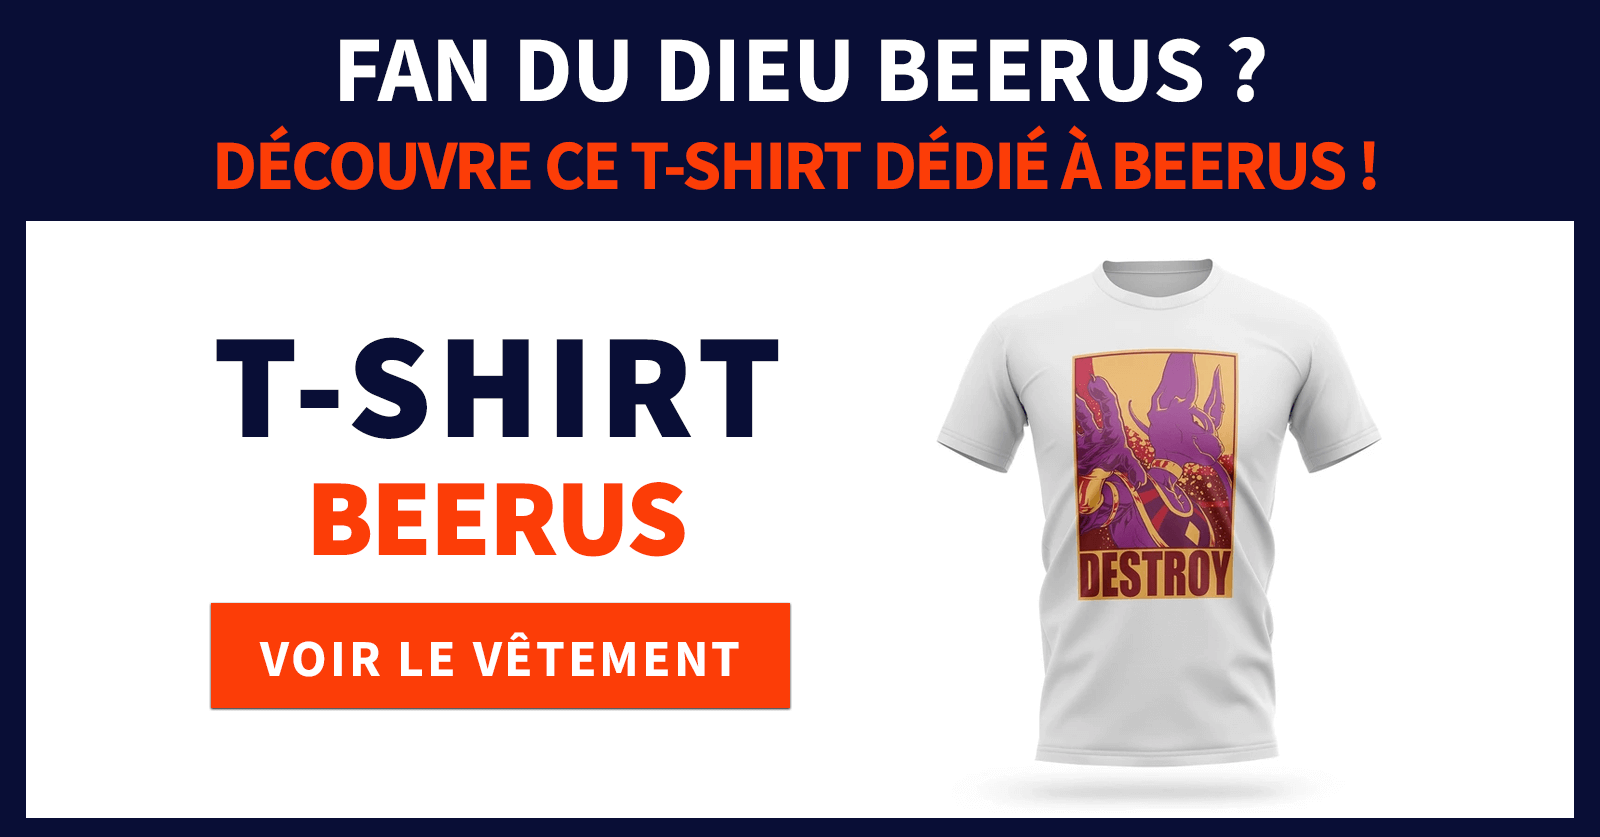 T shirt beerus destroy